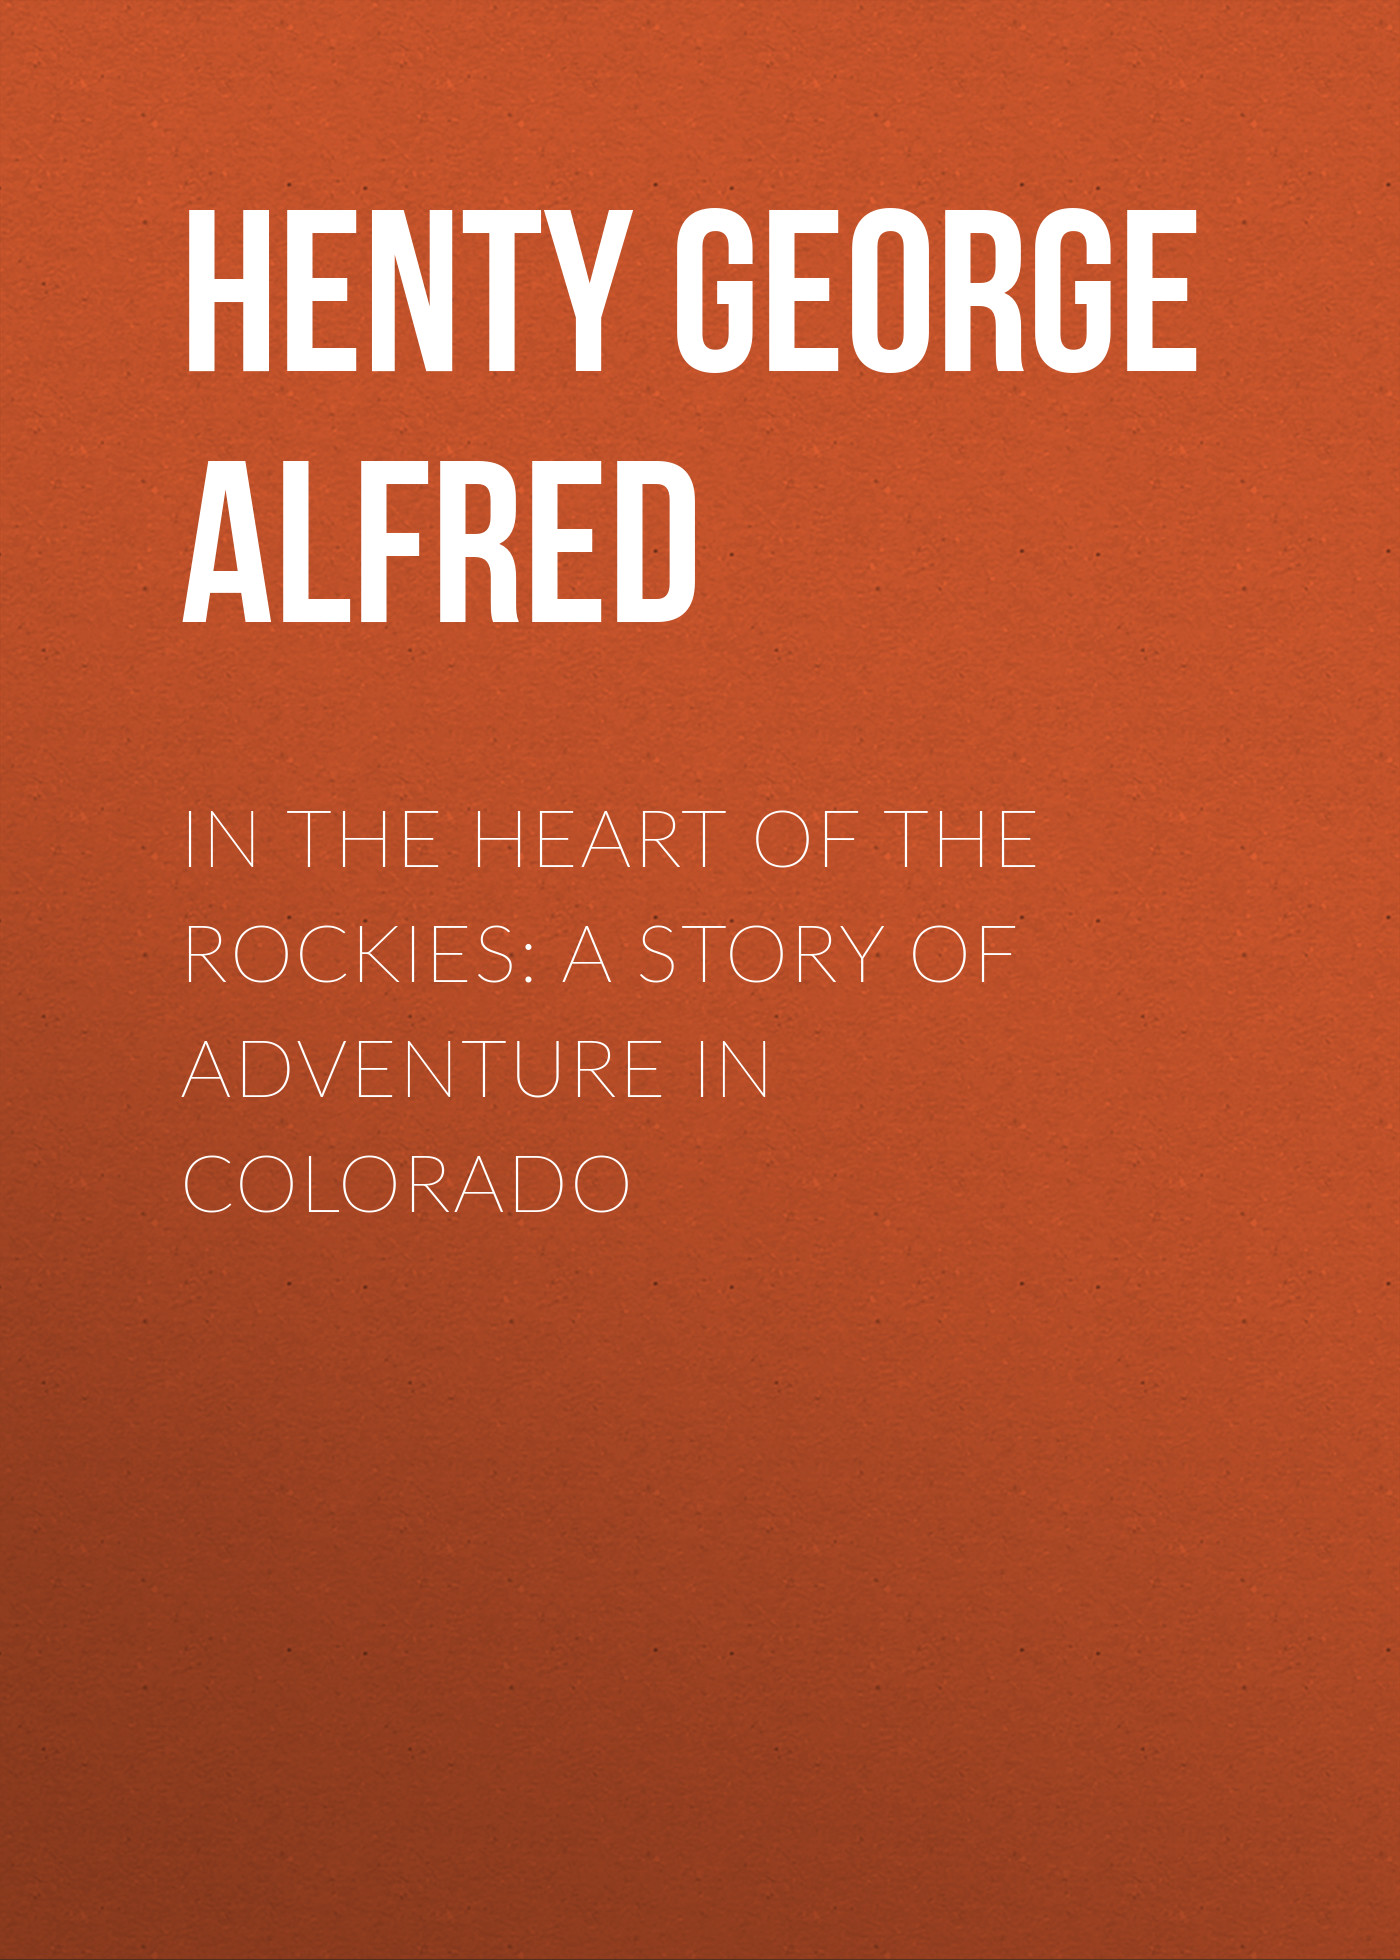 Henty George Alfred In the Heart of the Rockies: A Story of Adventure in Colorado henty george alfred in the reign of terror the adventures of a westminster boy